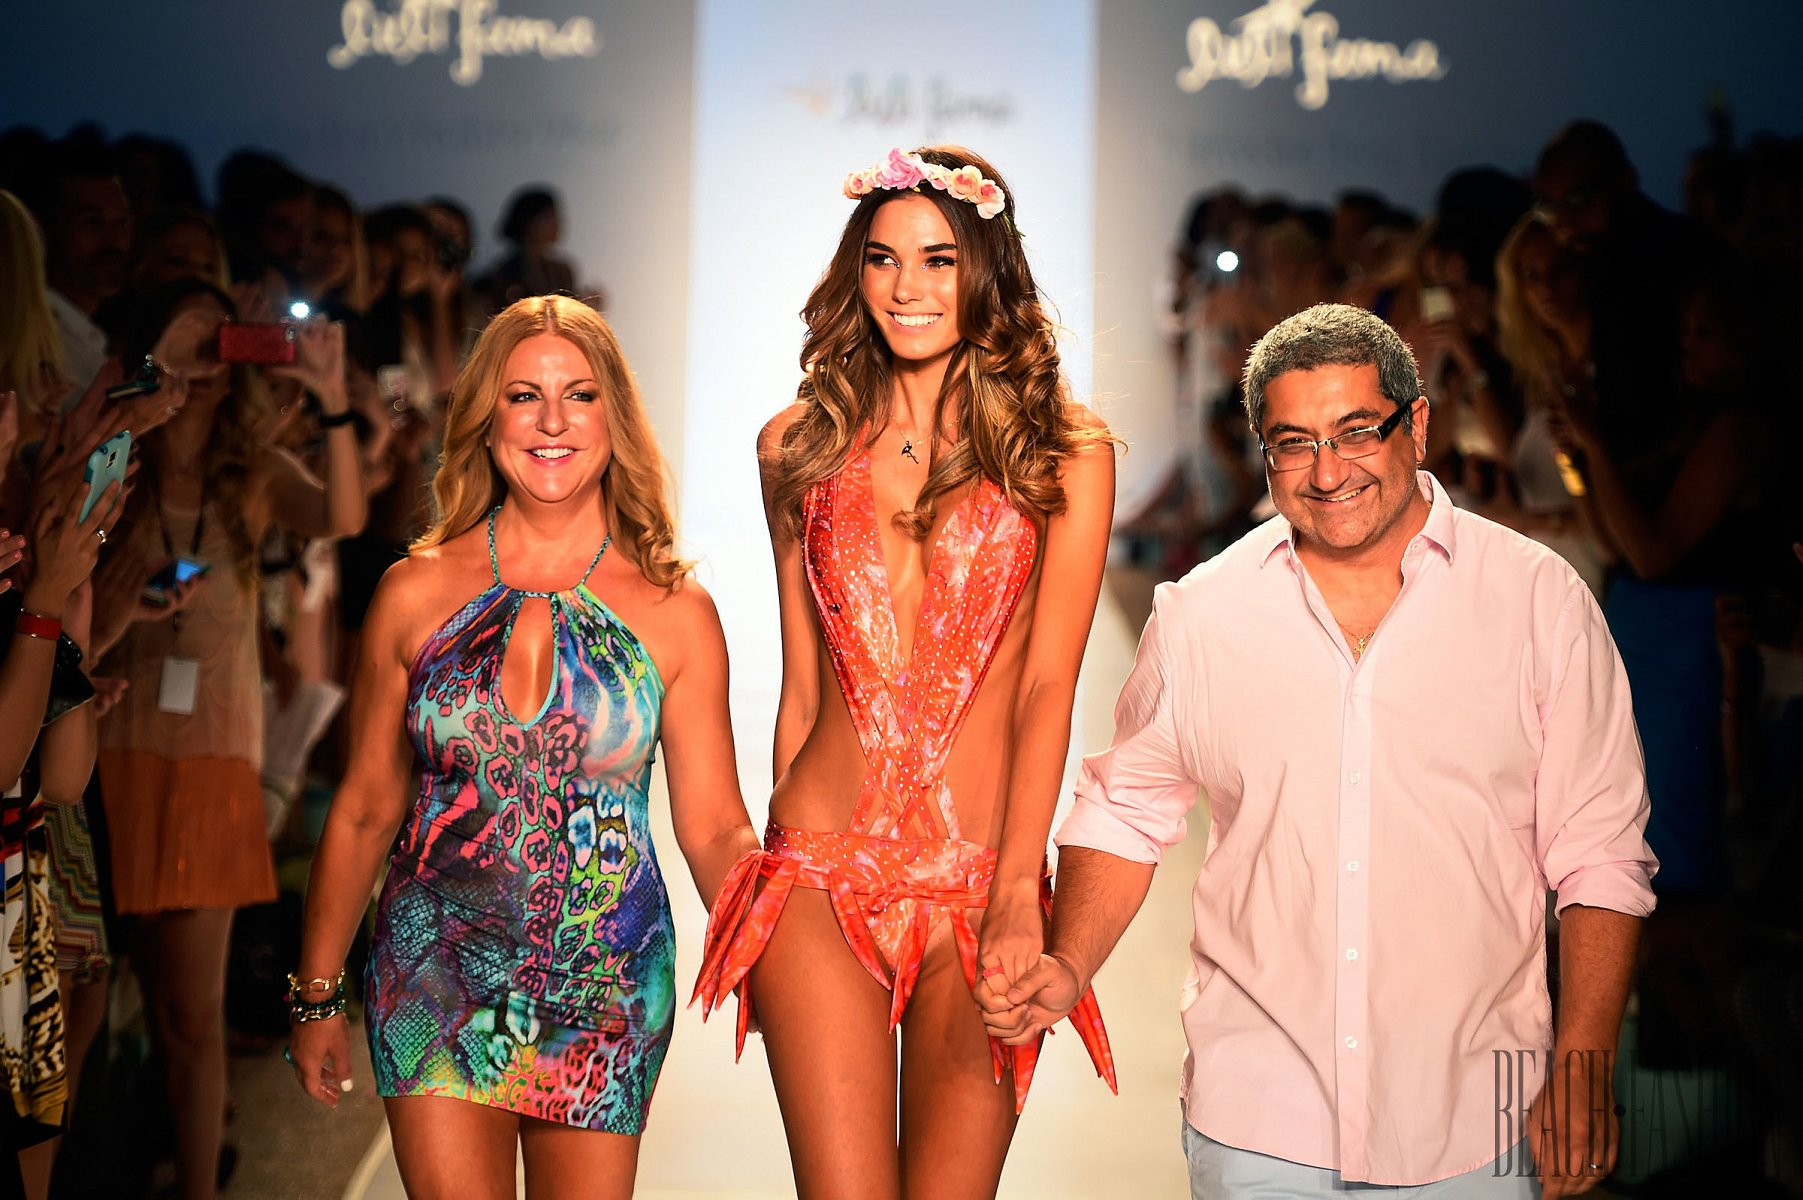 Luli Fama 2015 collection - Swimwear - 1